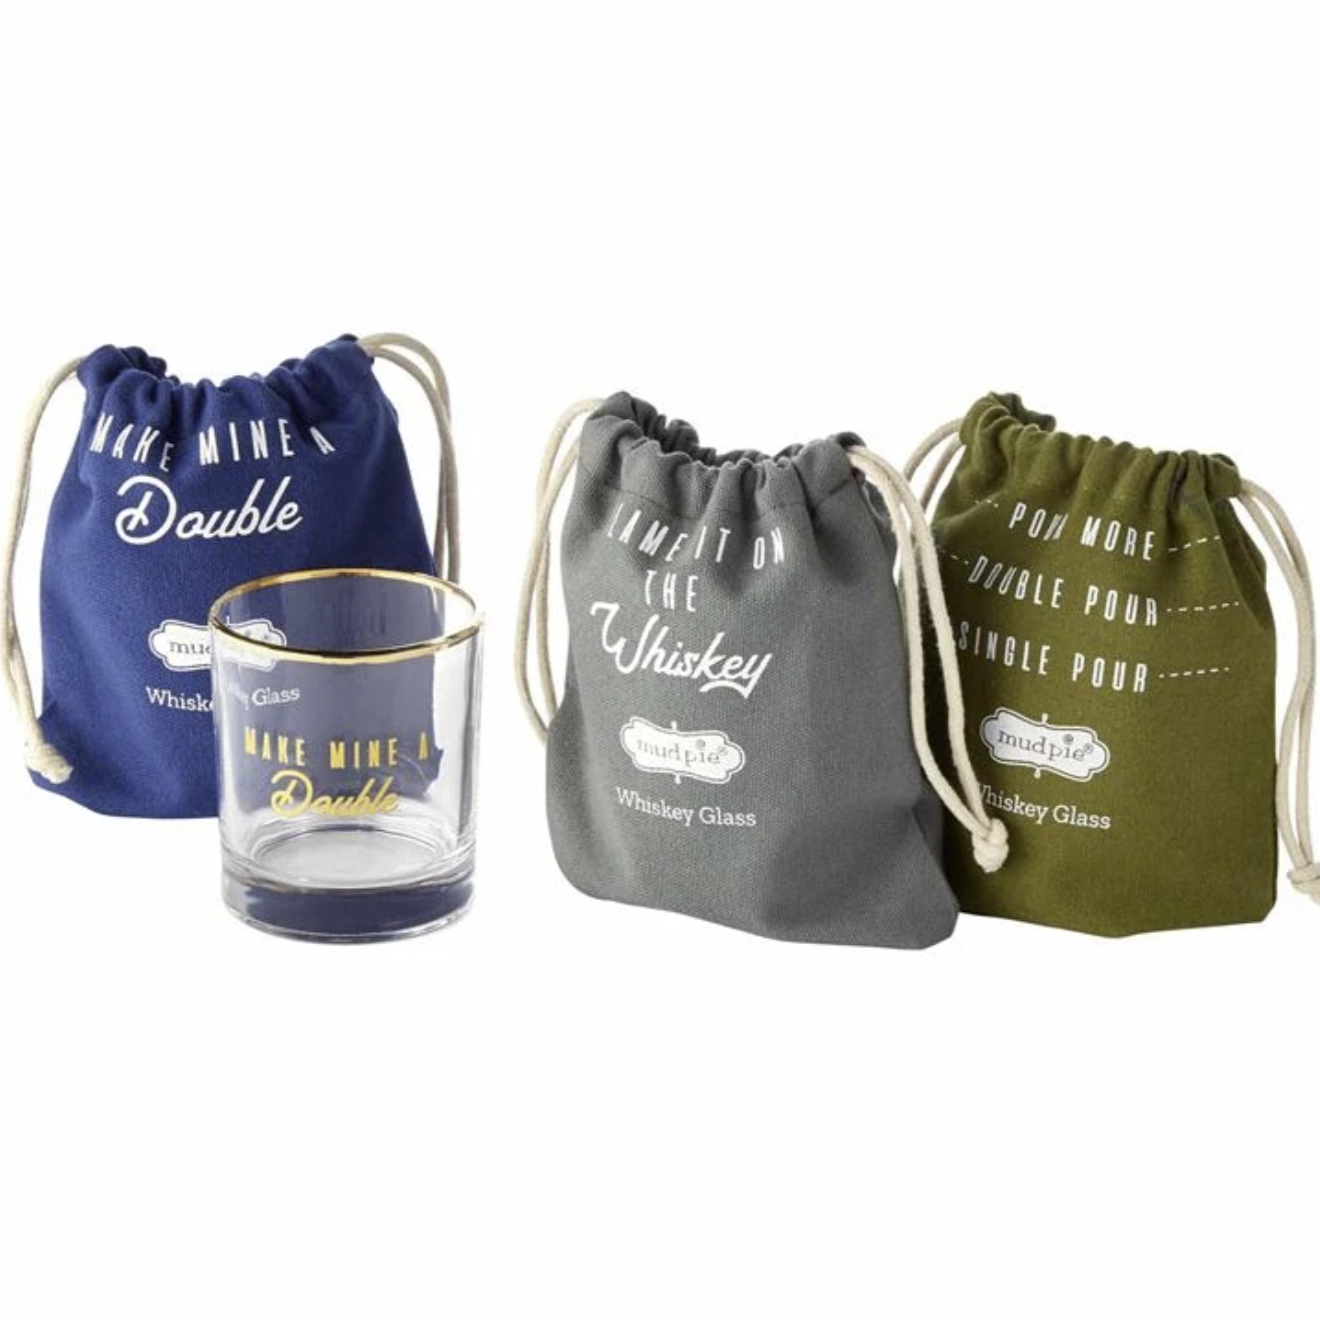 "On the rocks or neat, however you take your whiskey these will be a a fun addition to your barware. They make the ideal gift for the whiskey lover, packaged in a drawstring canvas bag. Each glass comes with a gold embossed sentiment - choose from ""Make Mine a Double"", Blame It On the Whiskey"", or ""Single Pour, Double Pour, Pour More"".   Dimensions: 6 oz"